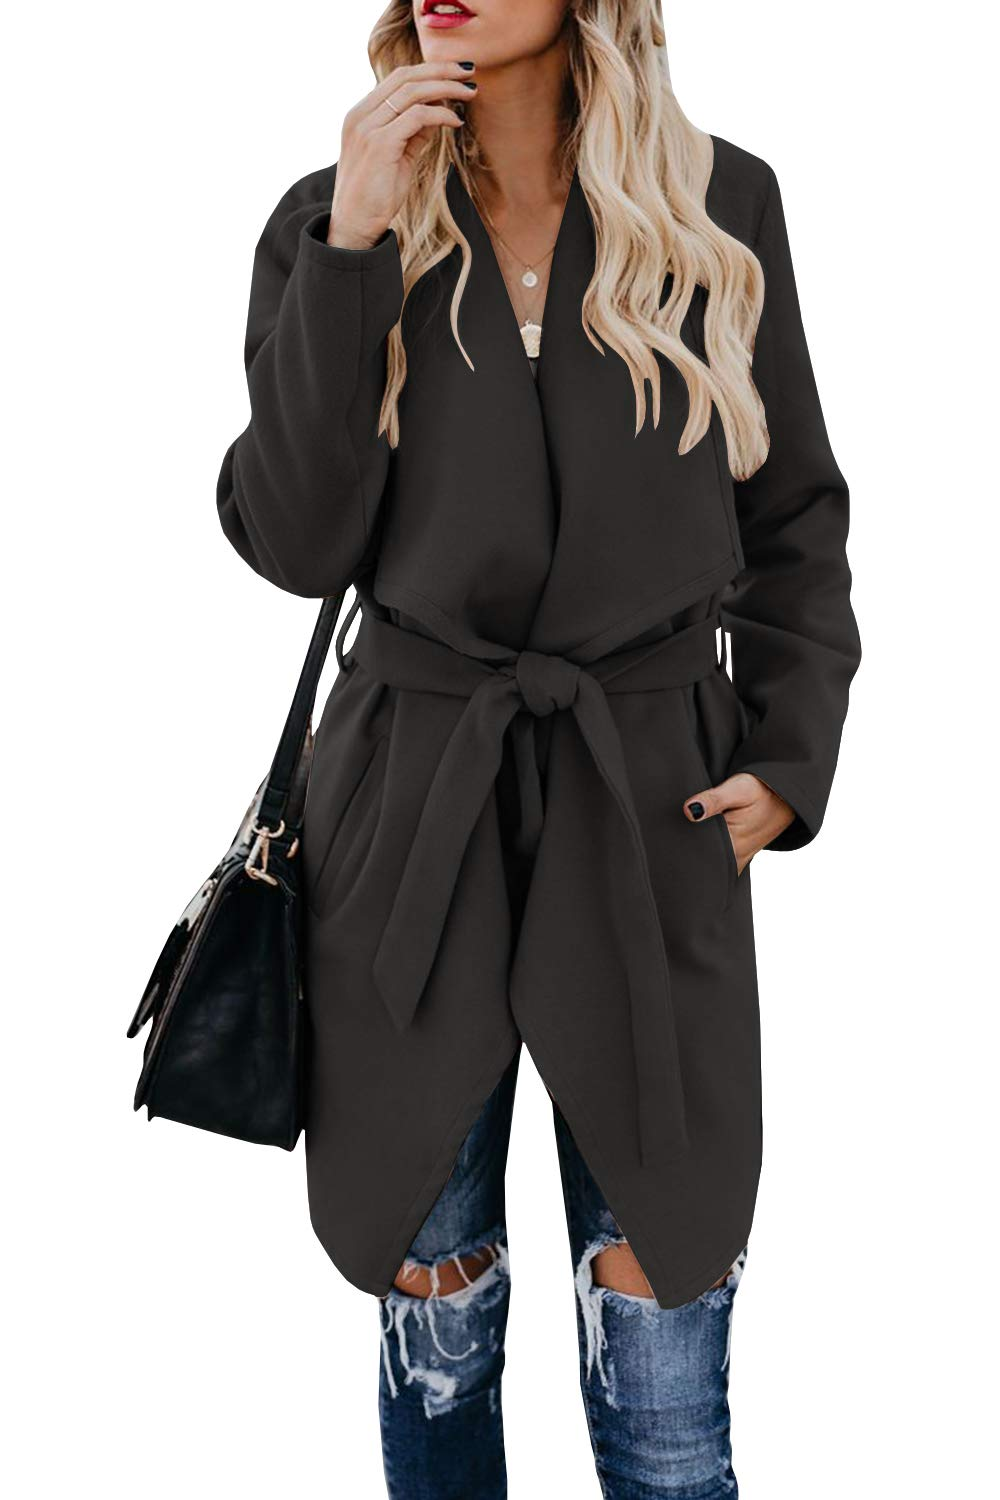 Foshow Women's Blend Lapel Wrap Belted Coat Pea Overcoat Casual Long Sleeve Trench Outwear Jacket with Pockets